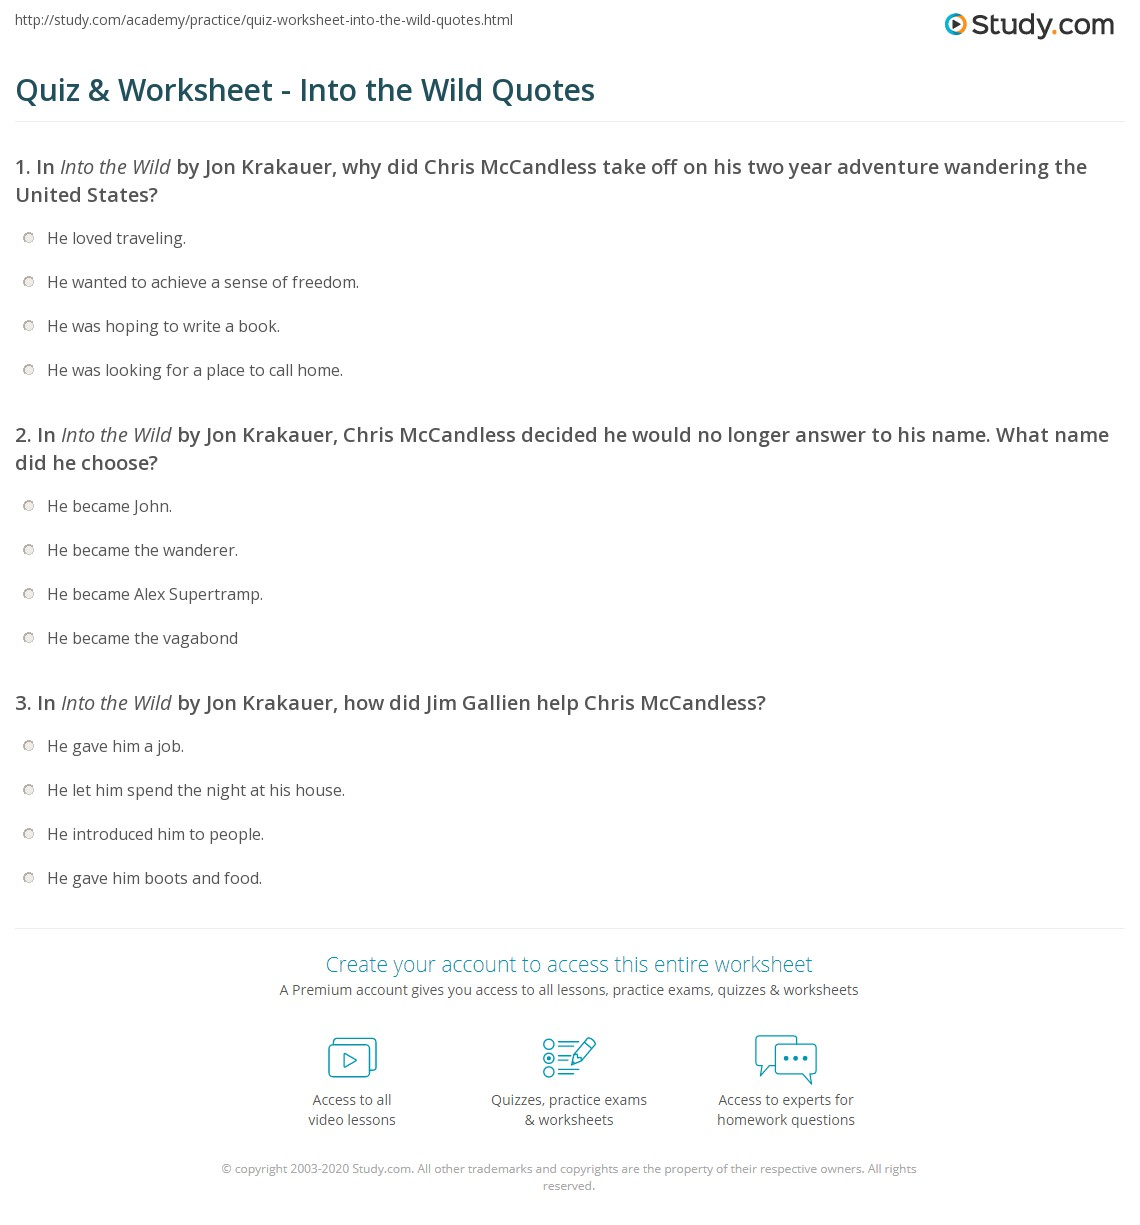 Quiz & Worksheet - Into the Wild Quotes | Study.com